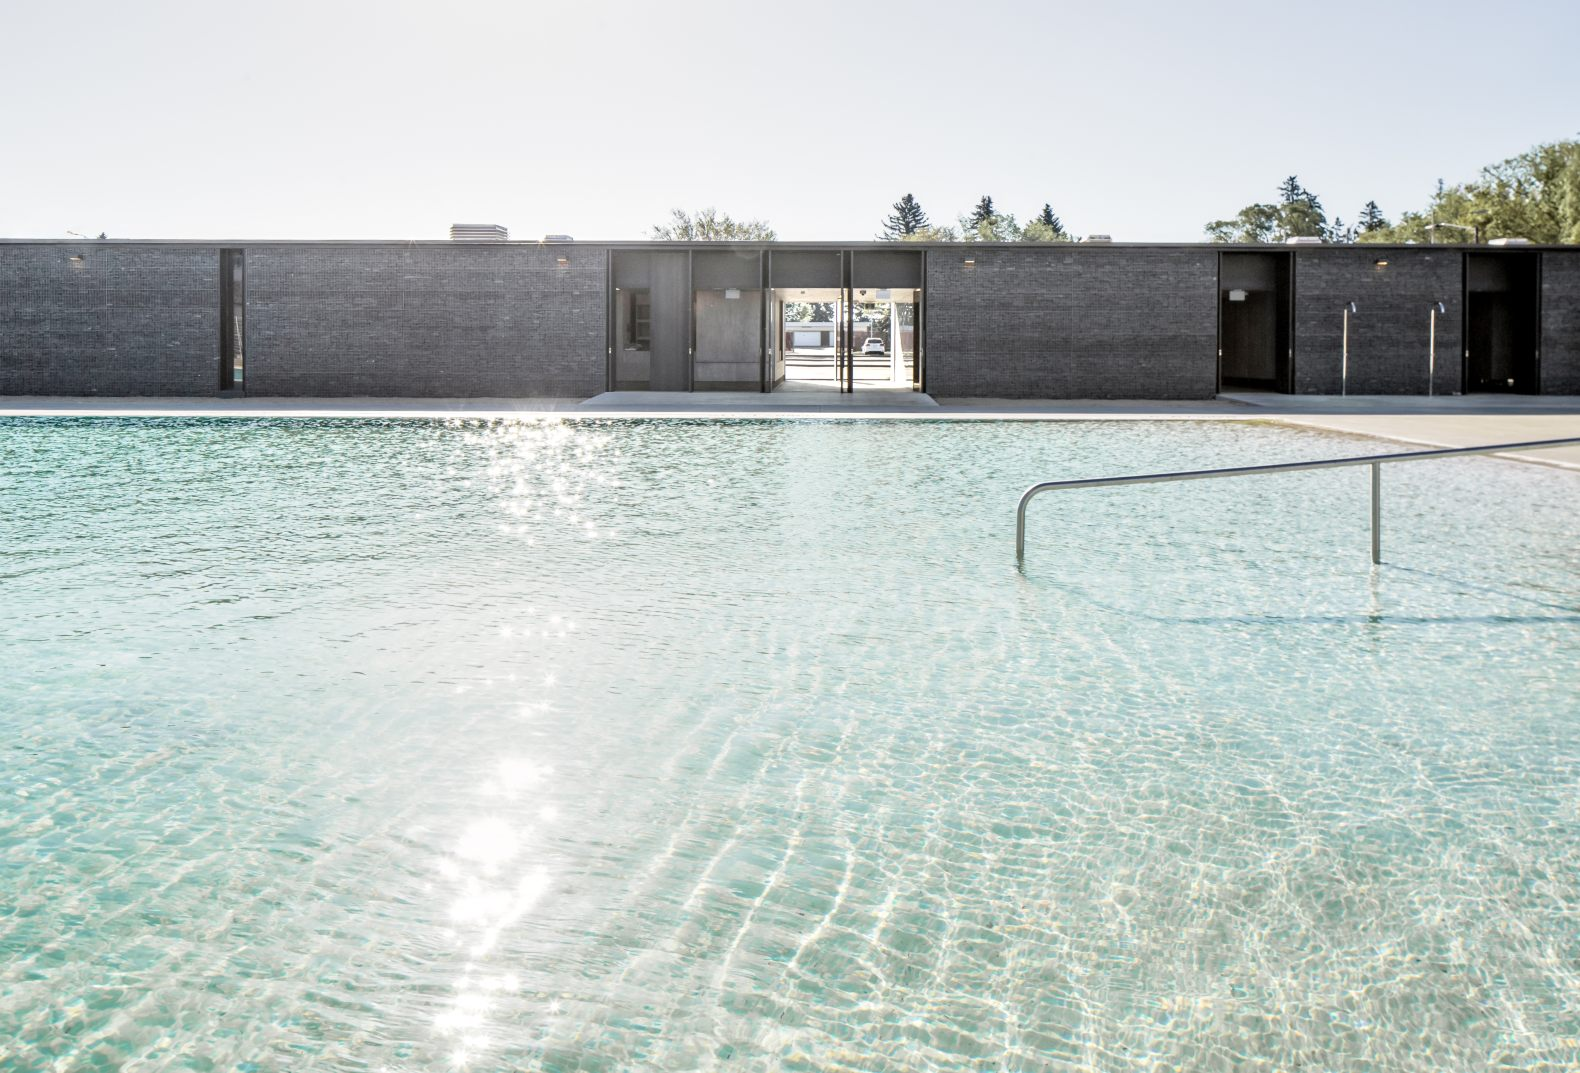 Canada unveils its first chemical-free public outdoor pool ...